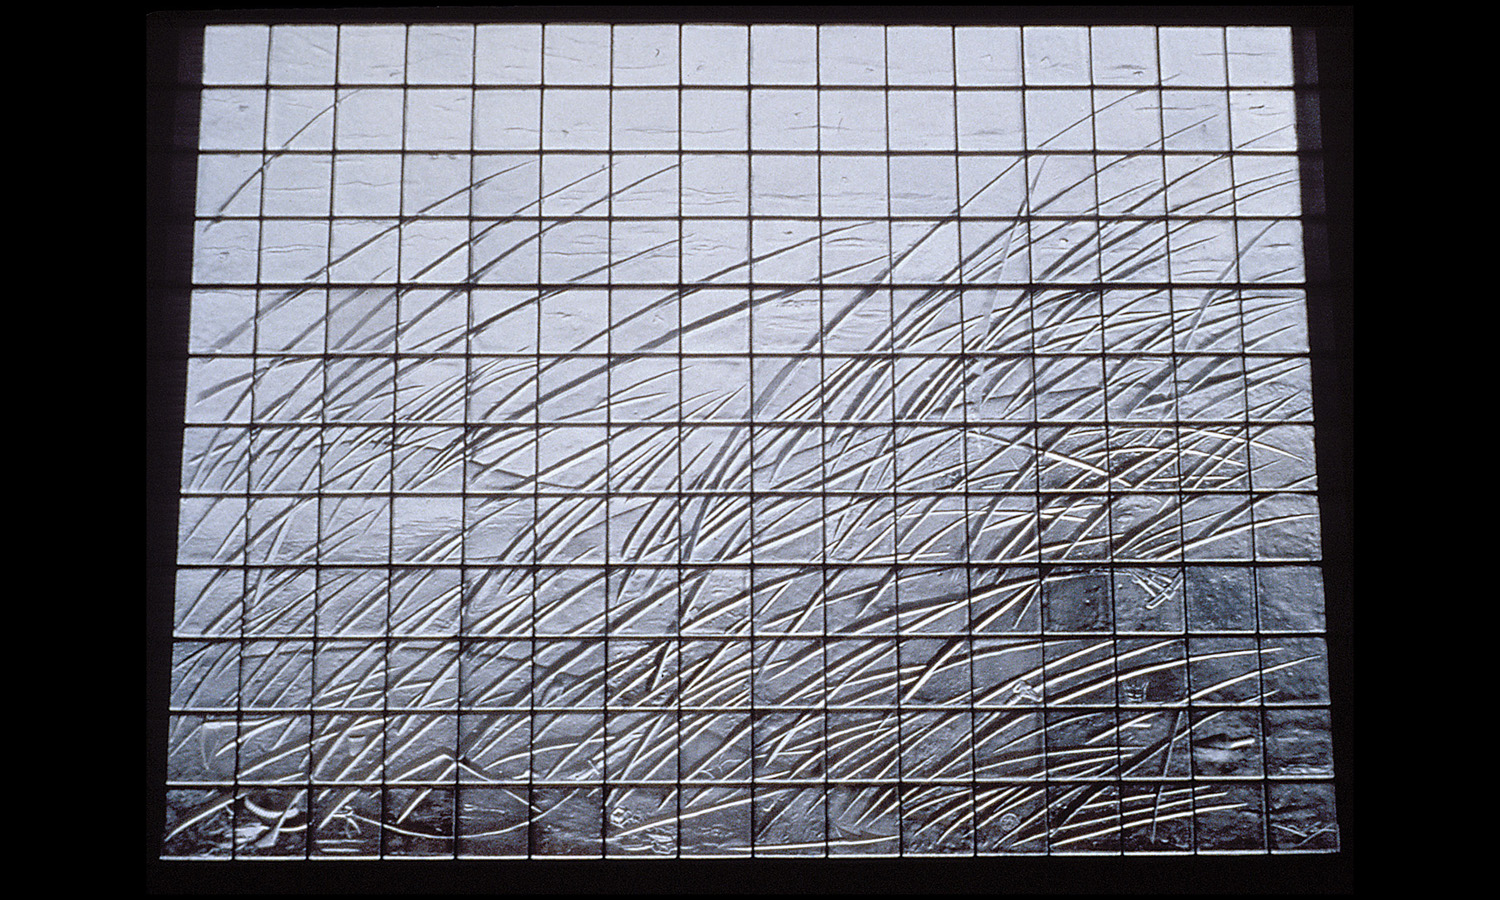 Grass in Wind   1990. Cast glass, stainless steel. 12 x 16 feet. Northern Essex County Courthouse, Newburyport, MA